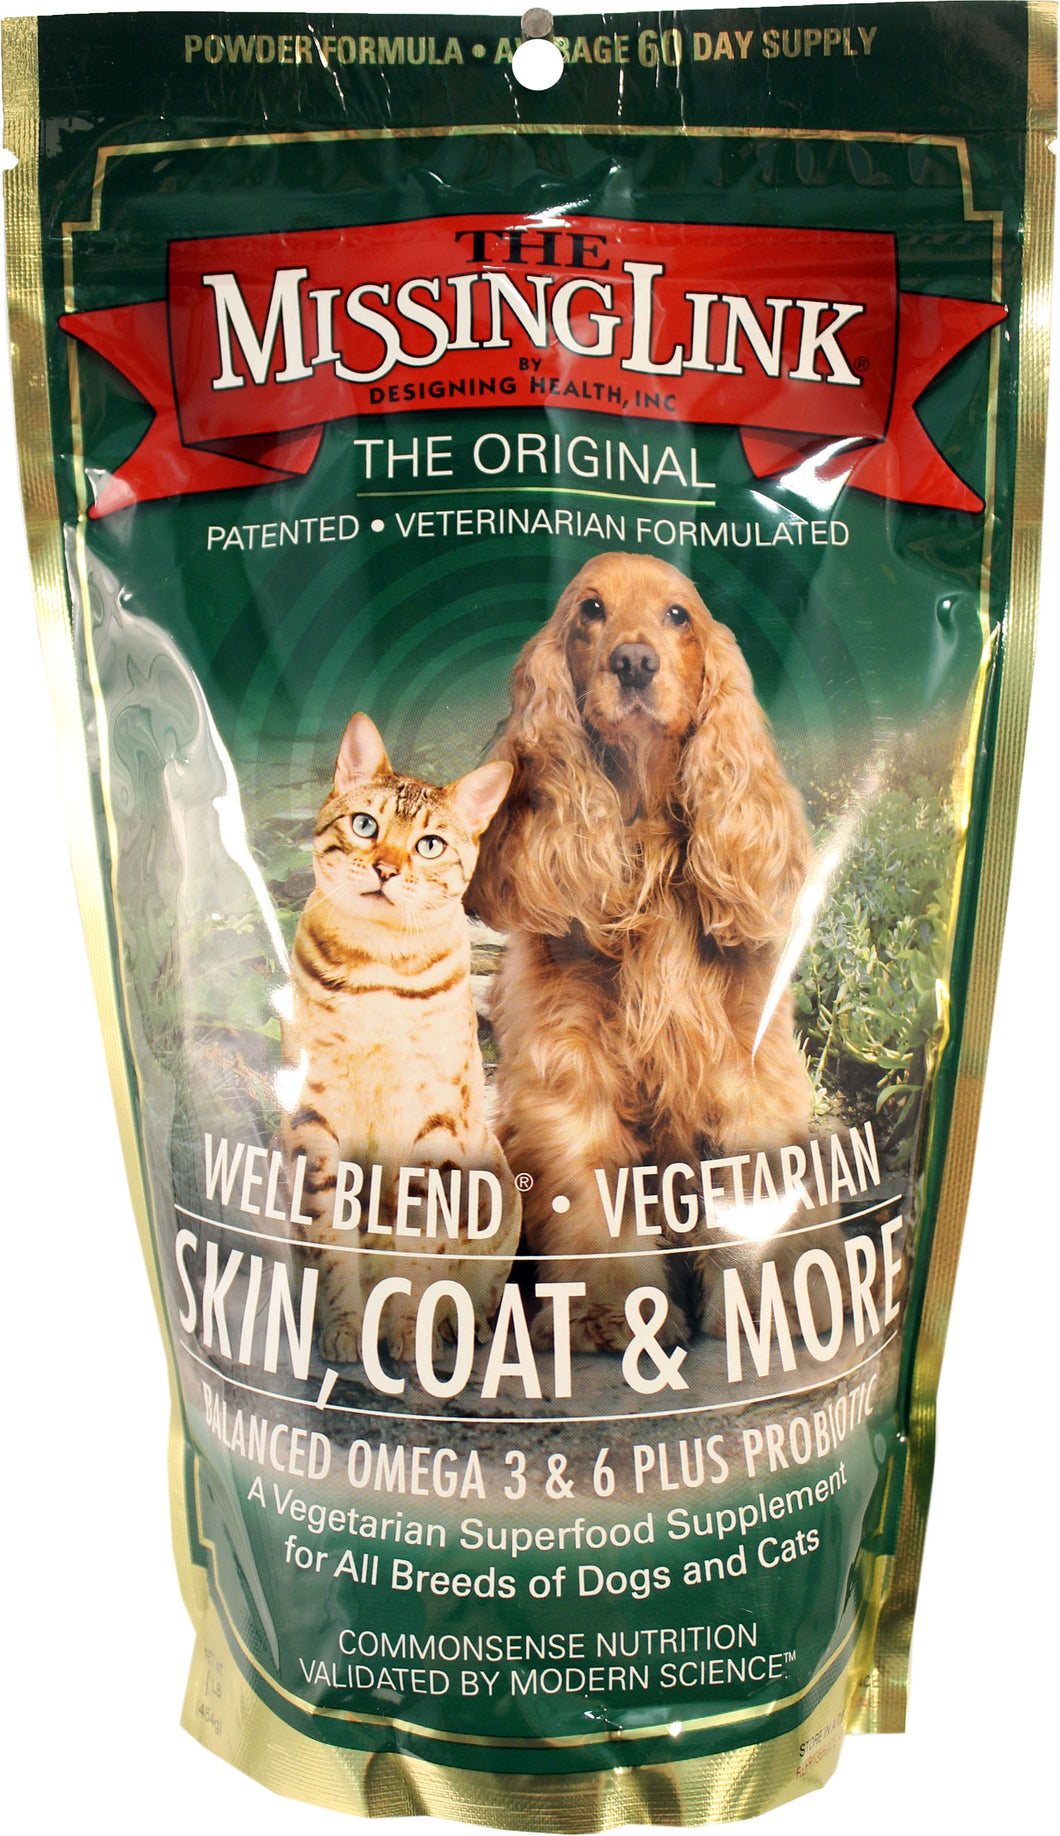 W F Young Pet - Missing Link Vegetarian Skin & Coat For Dog & Cat